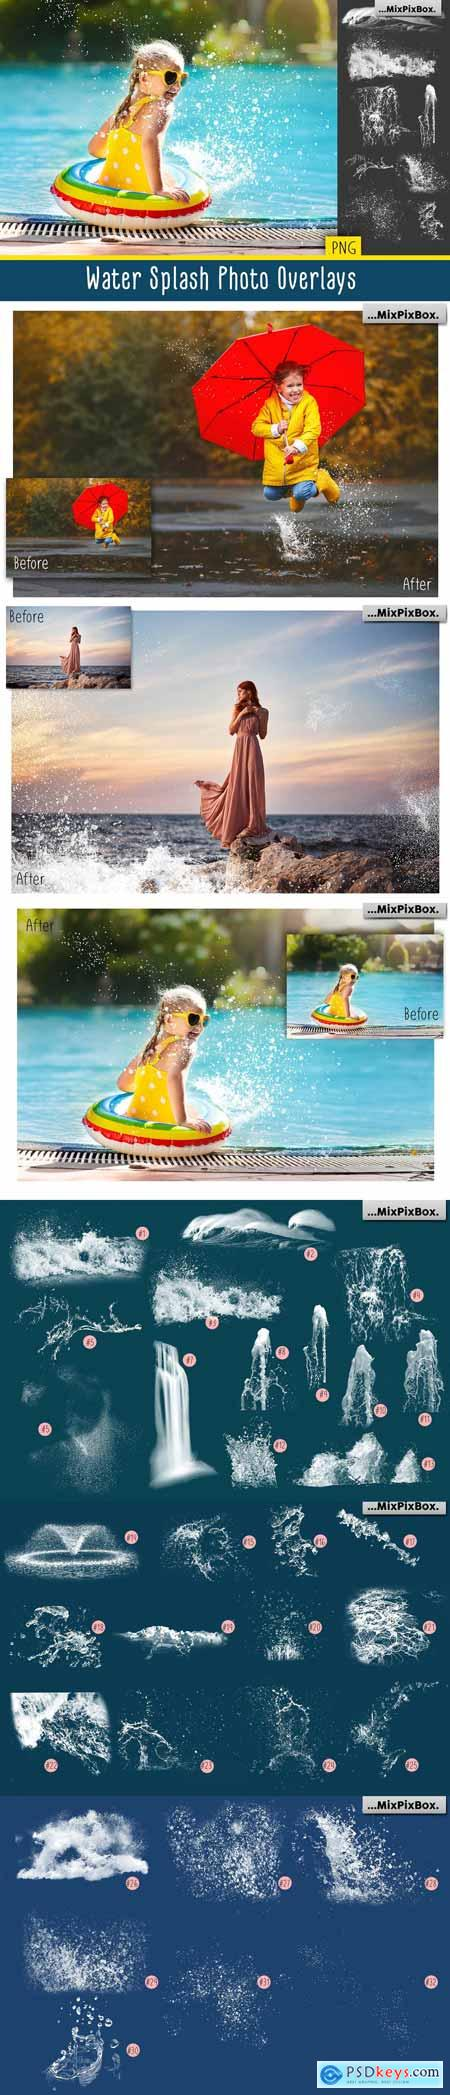 Water Splash Photo Overlays 3407296